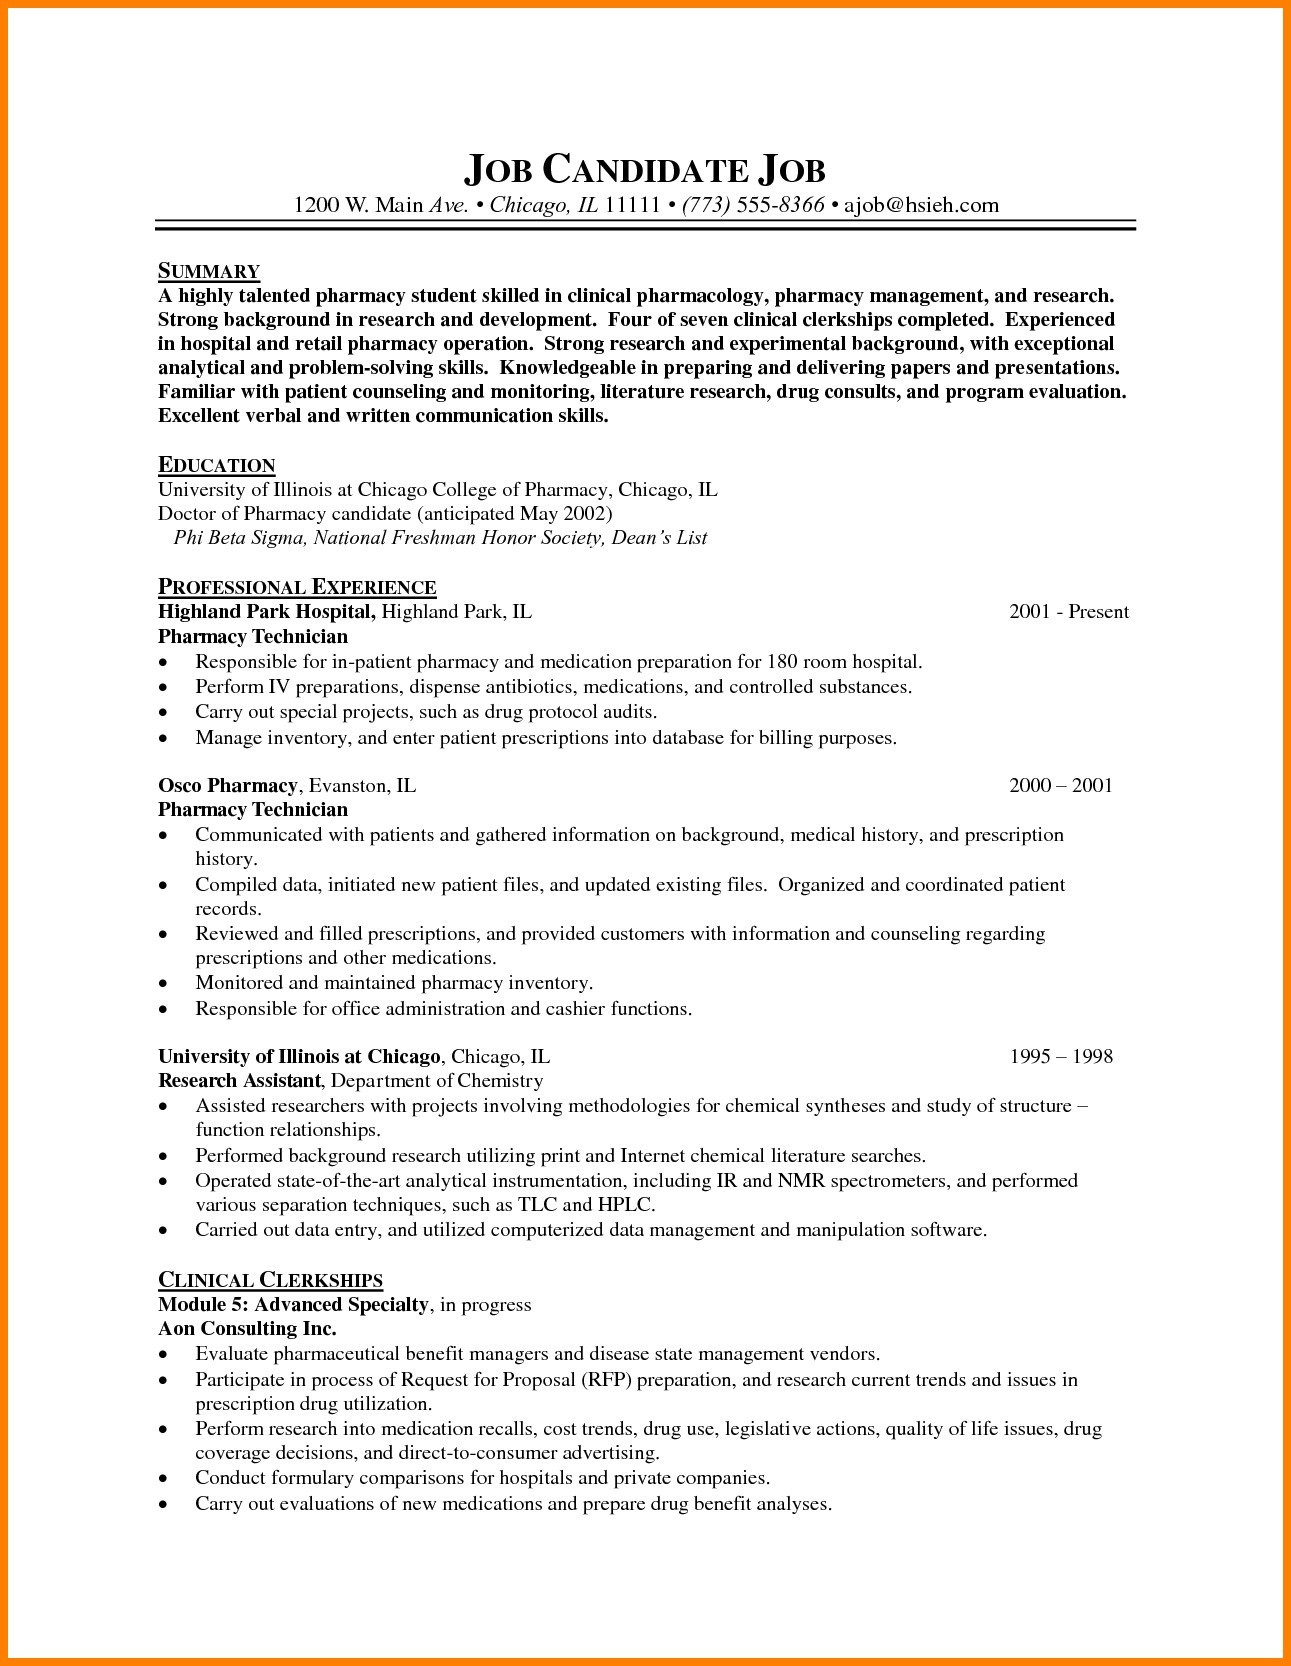 Resume Template for Pharmacy Technician - 16 Pharmacy Technician Resume